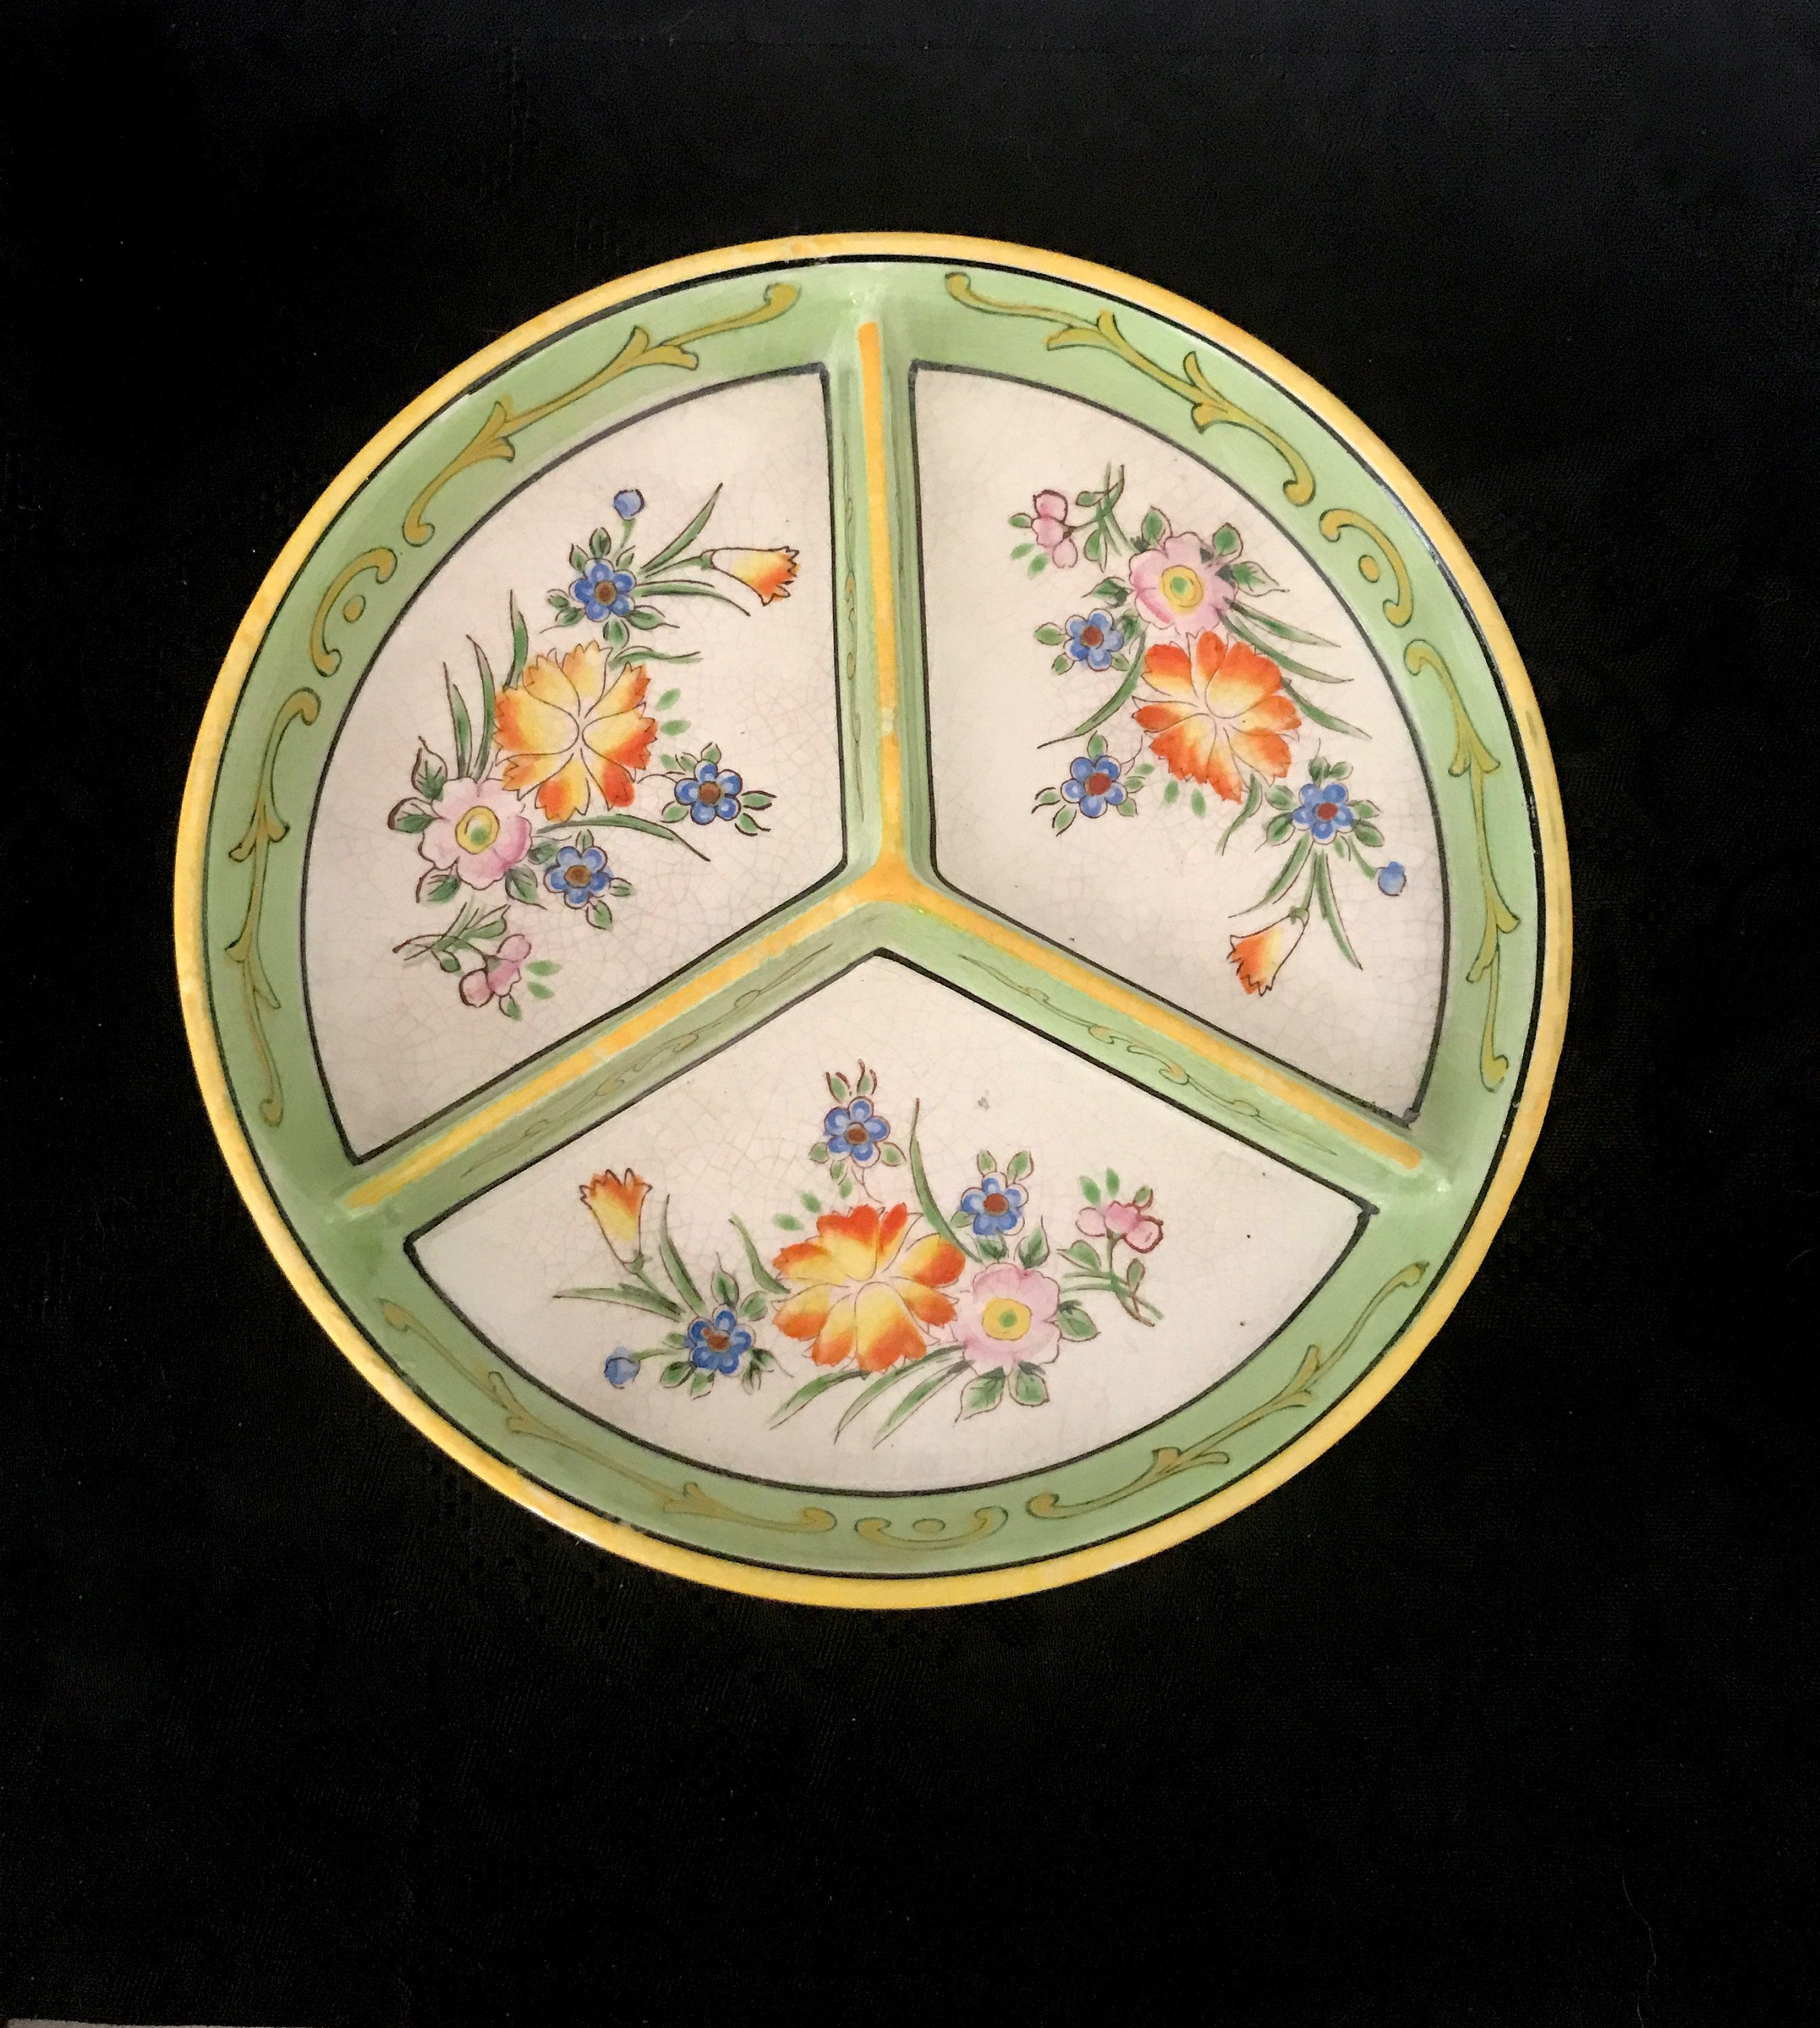 Kitchen ware ceramic divided plate relish dish 'Moriyama Morimach  Japanese hand crafted 1926 - 1929's #kitchenware